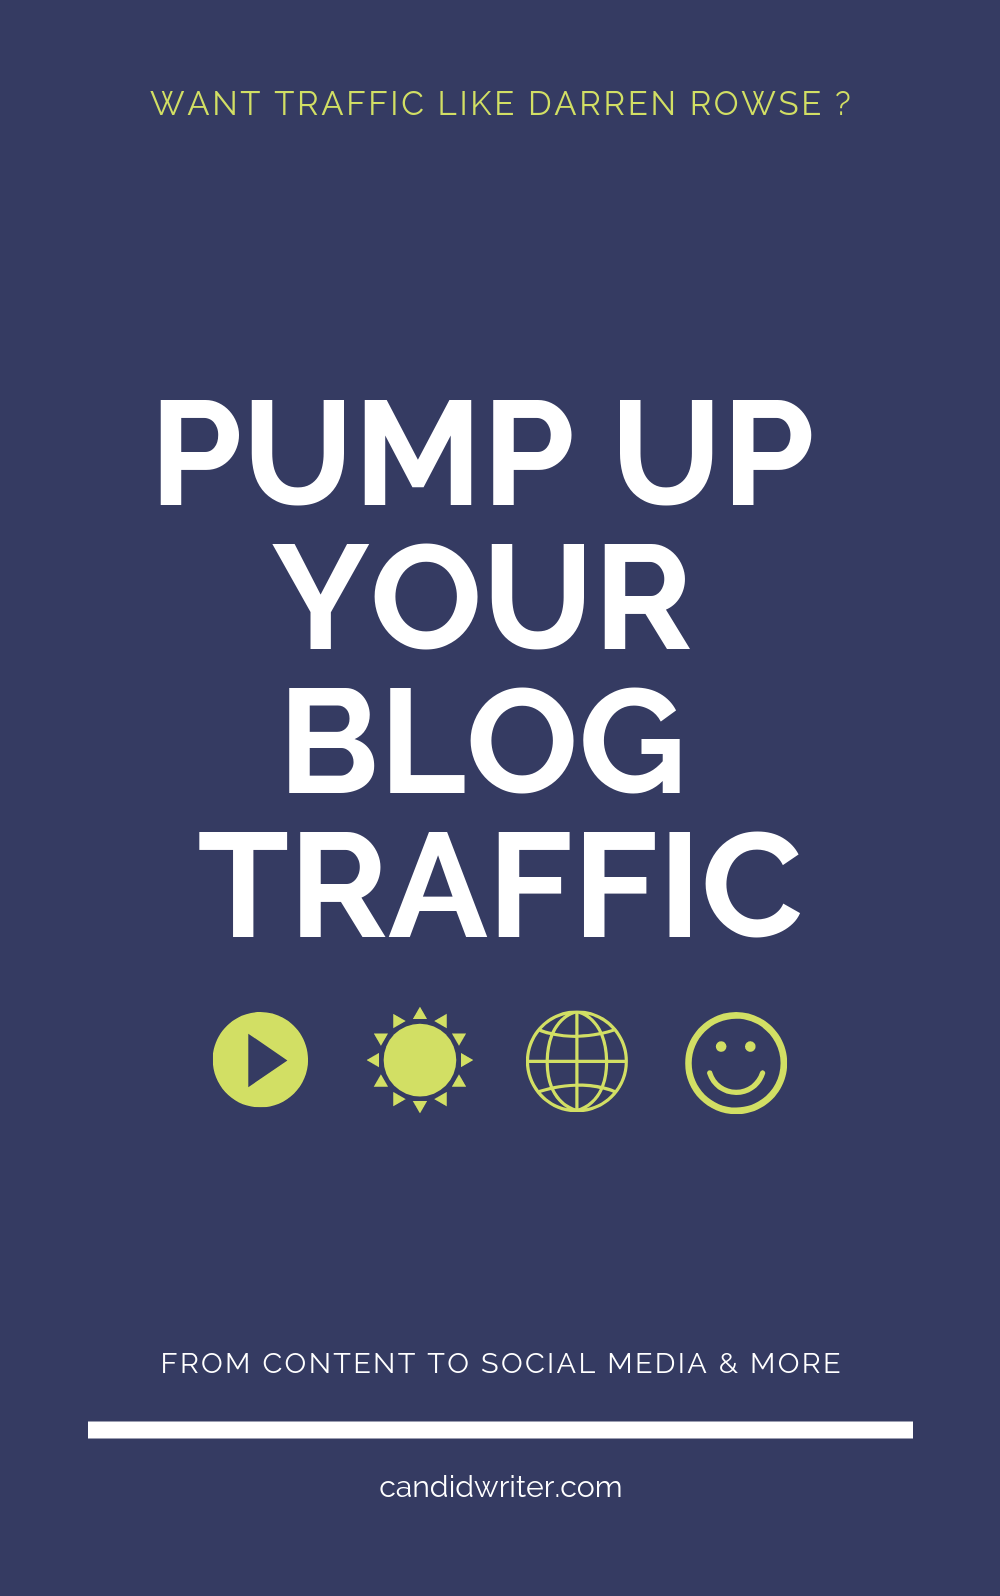 Blog Traffic Like Darren Rowse   Source